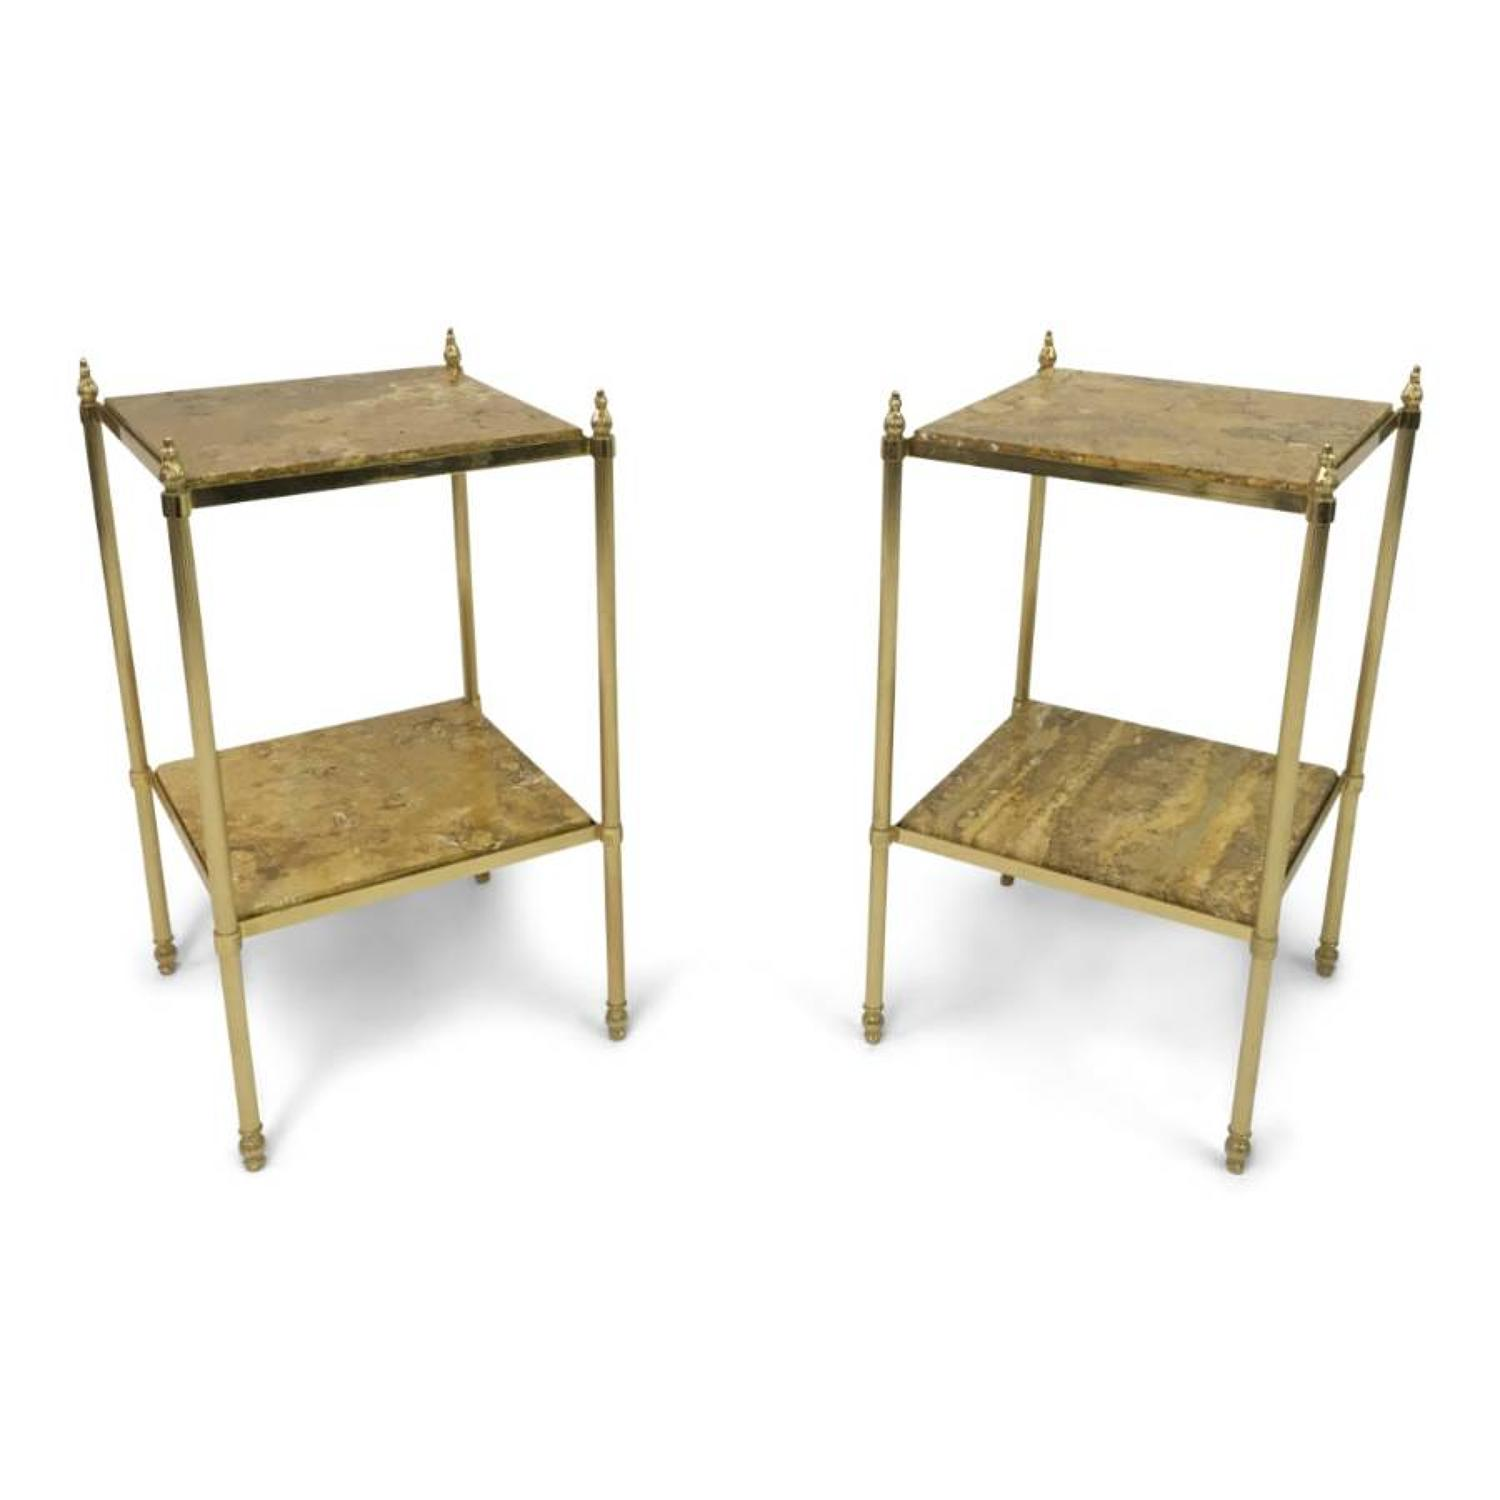 A pair of French brass and stone side tables